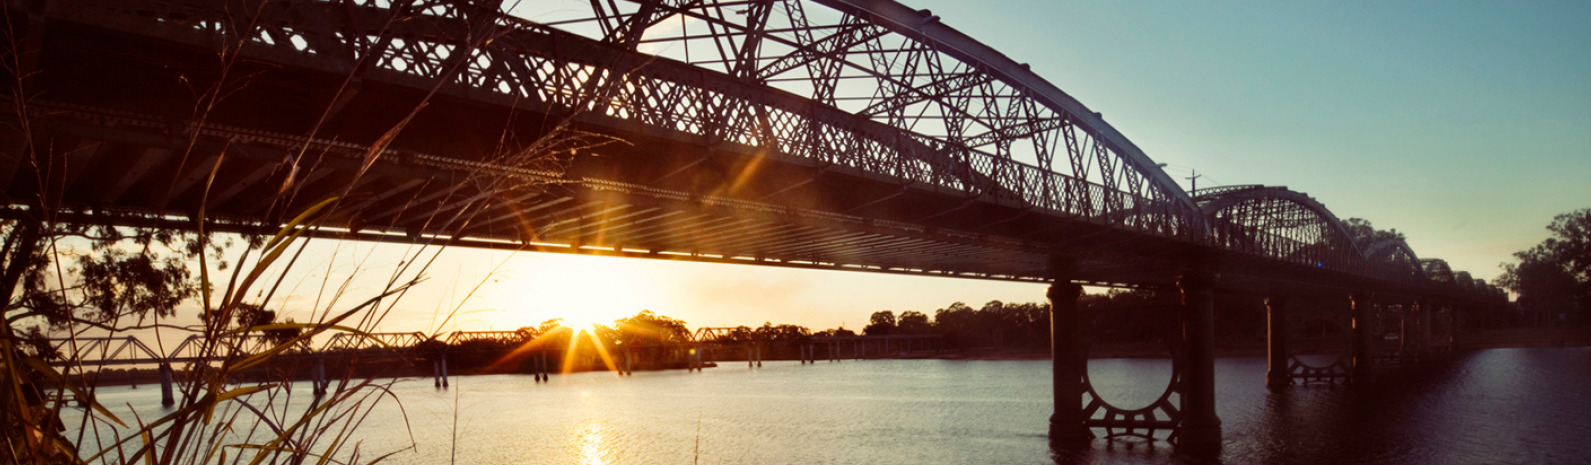 Burnett traffic bridge over burnett river at sunset 2